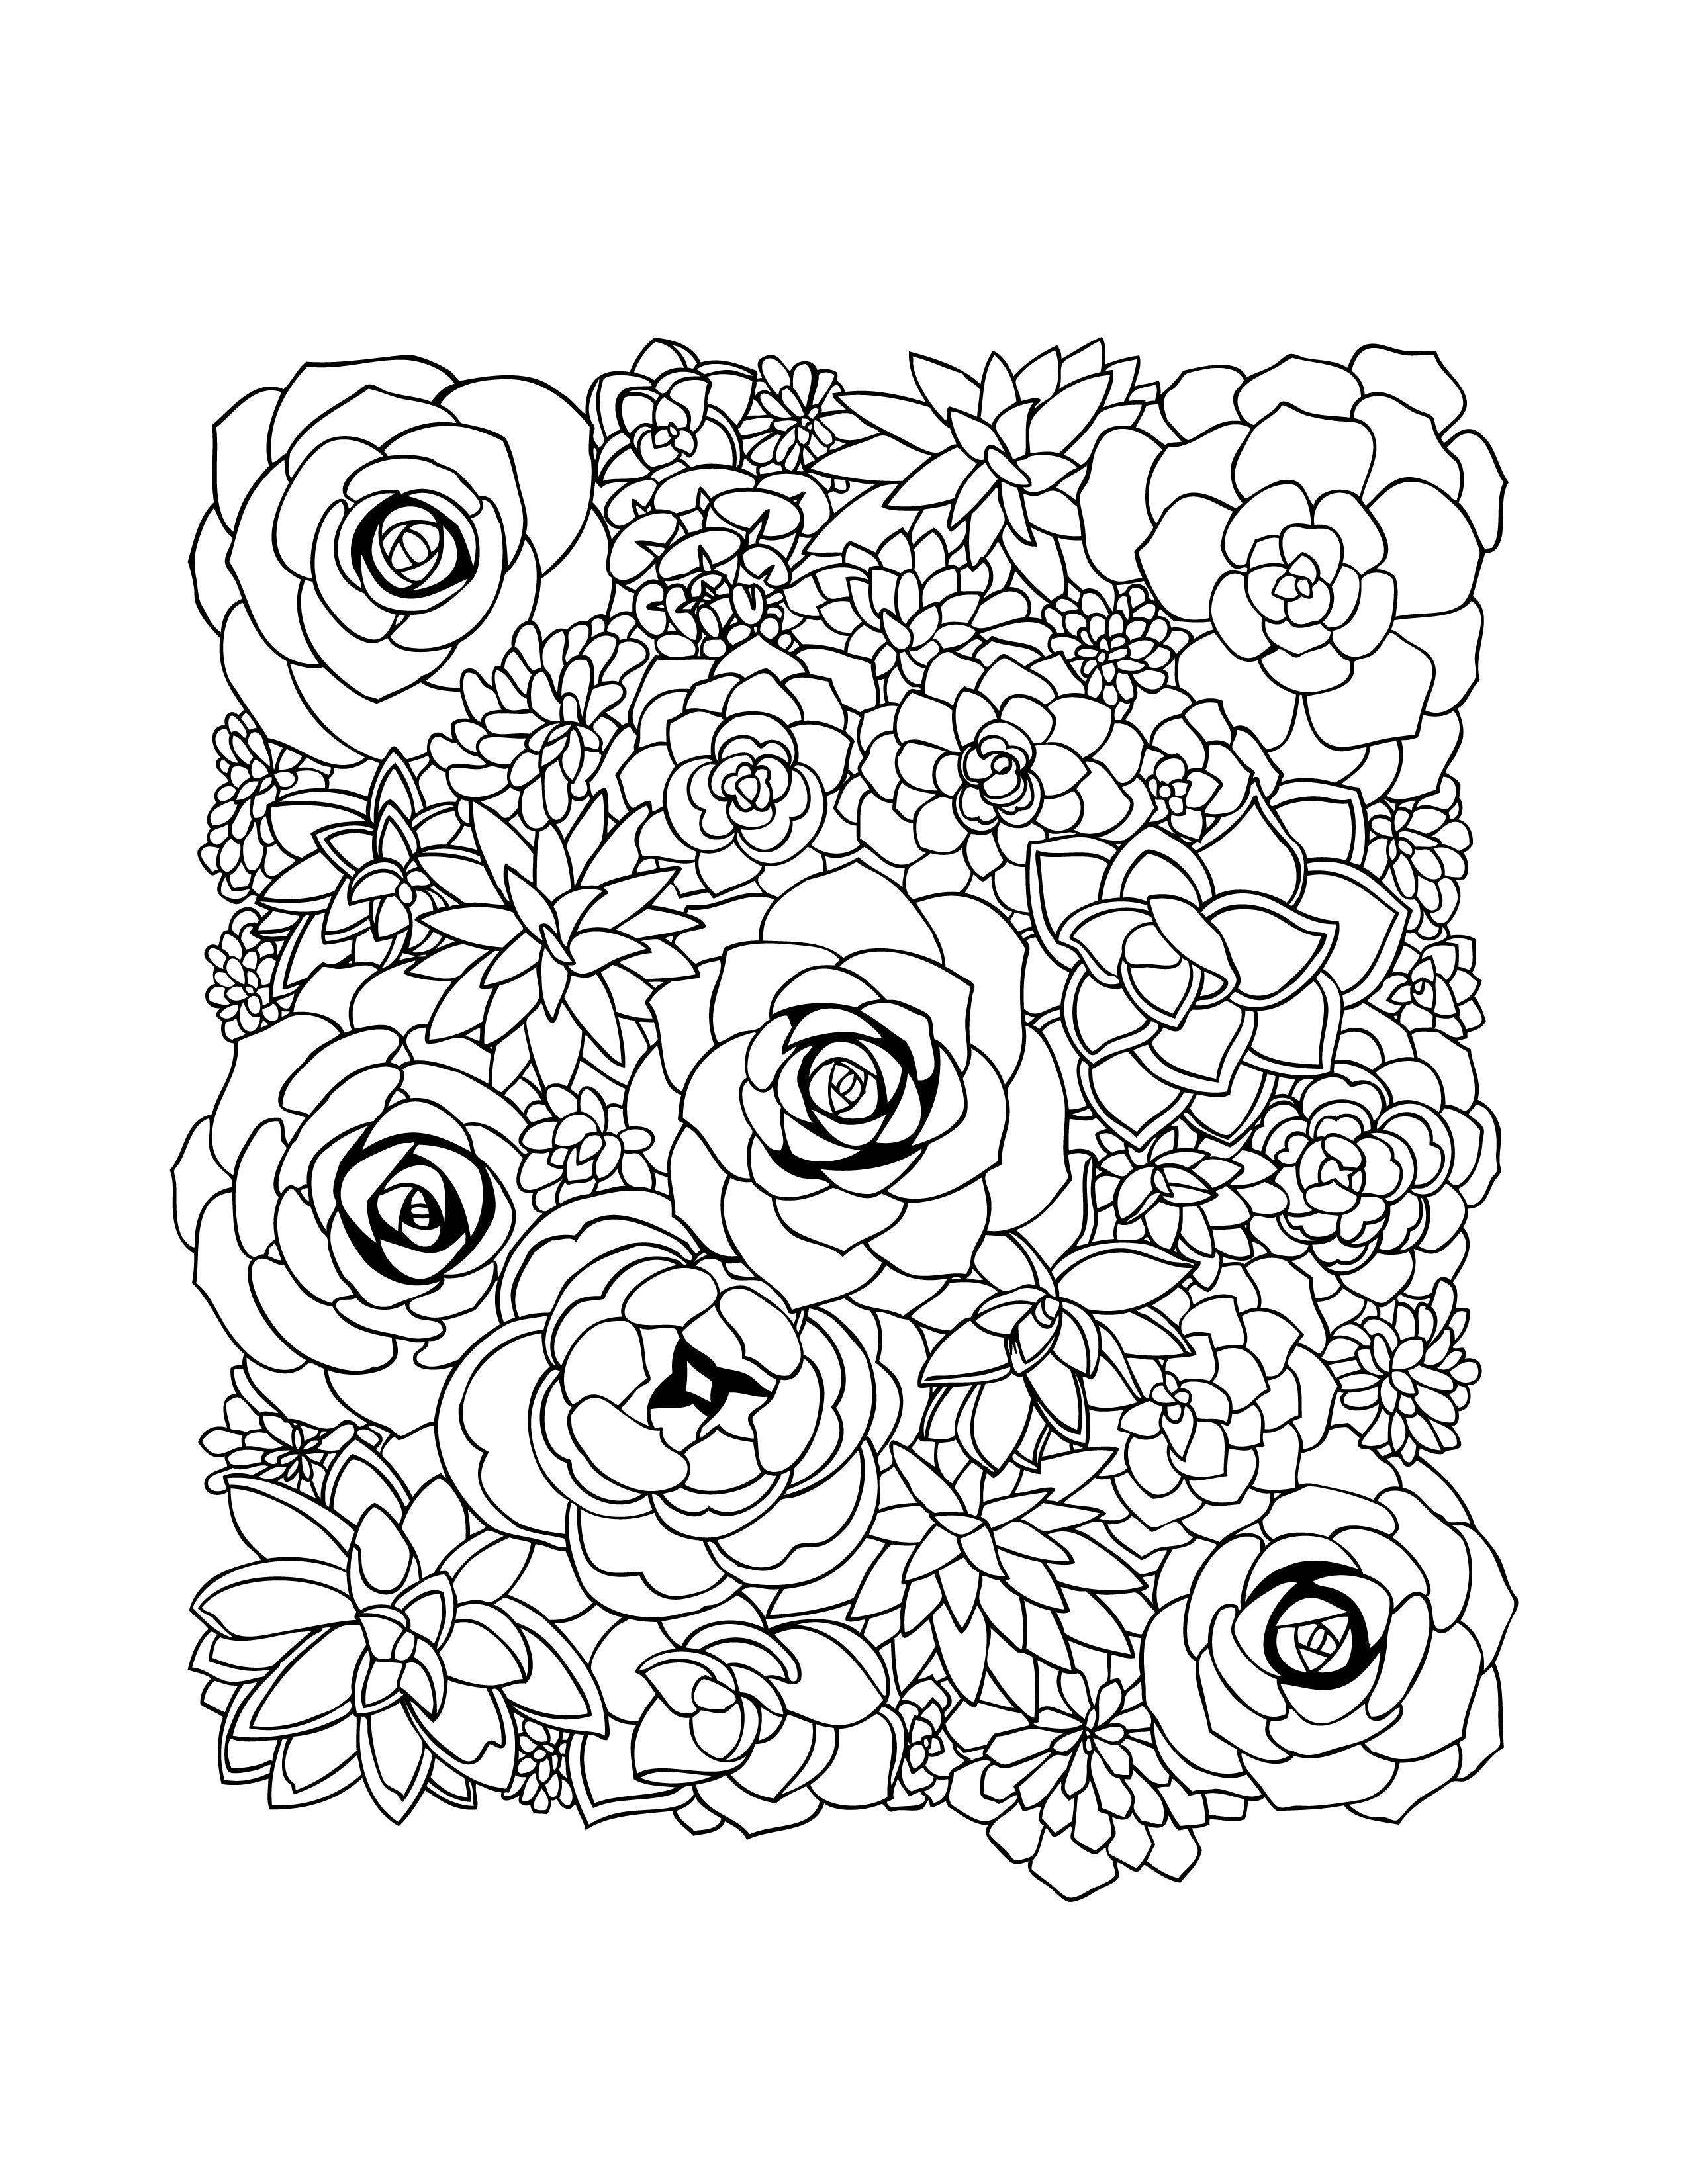 2550x3300 Free Coloring Page Of Succulents Boelter Design Co.